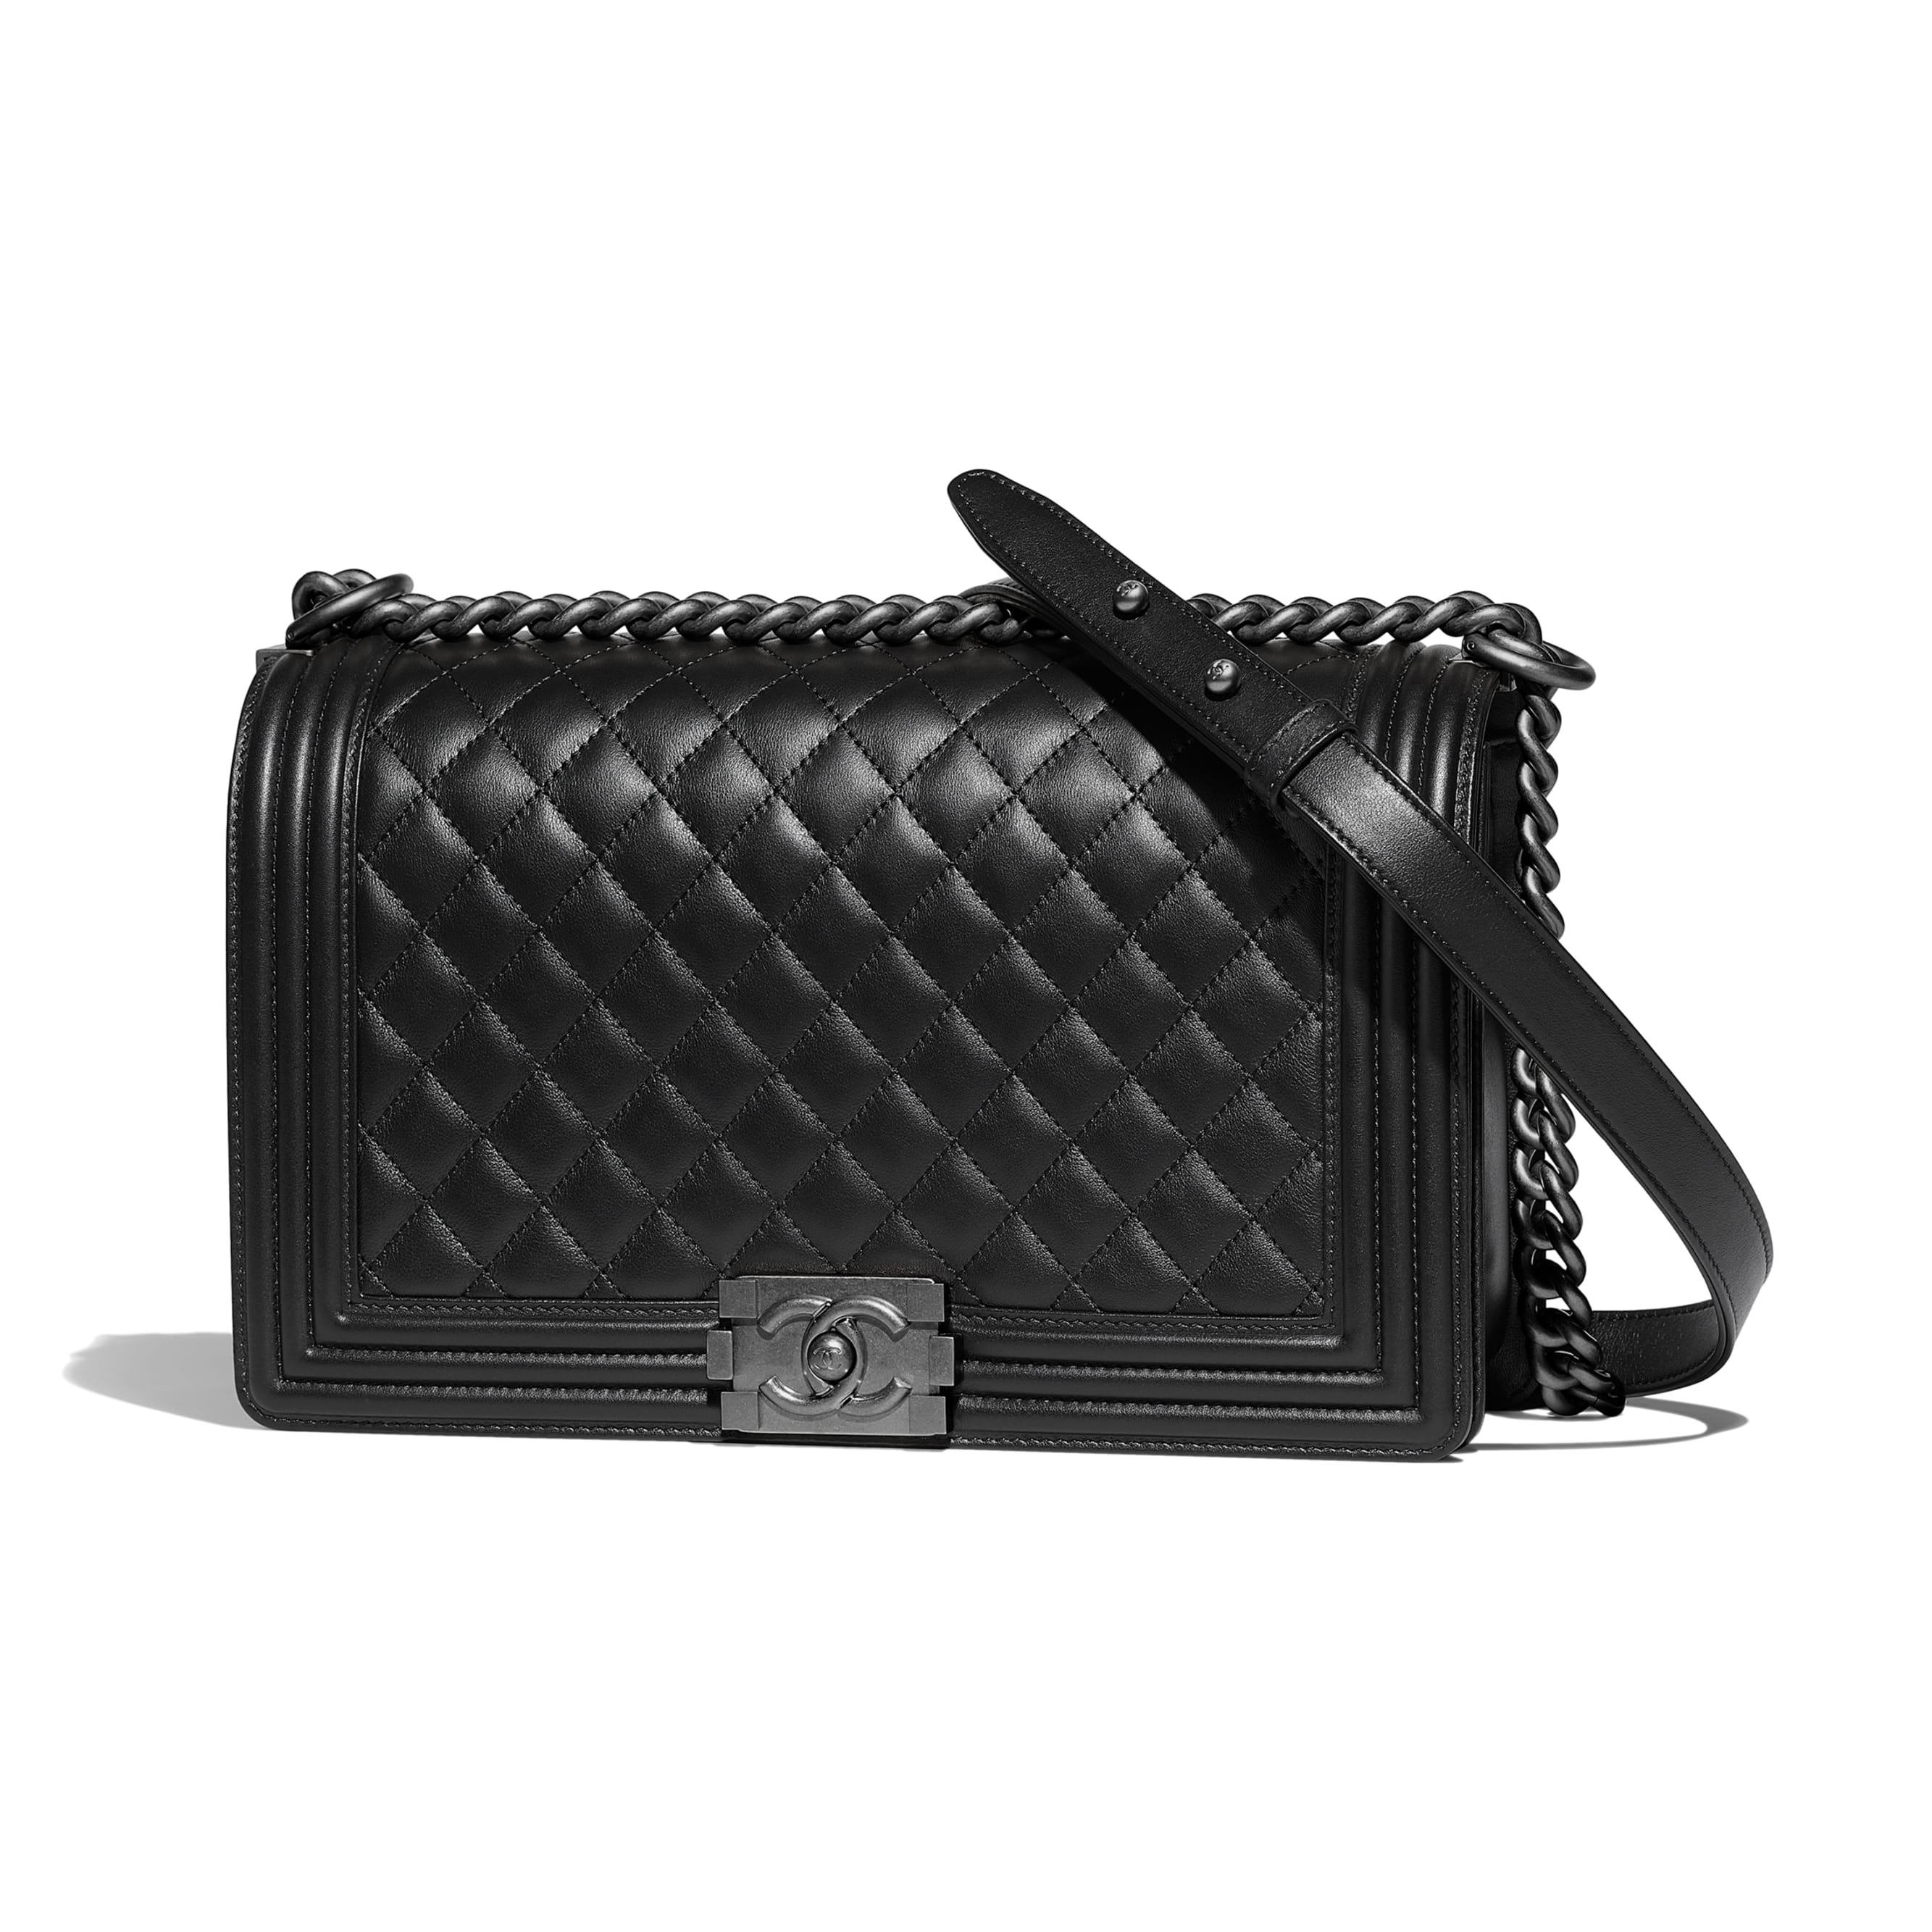 Large BOY CHANEL Handbag - Black - Calfskin & Ruthenium-Finish Metal - Default view - see standard sized version